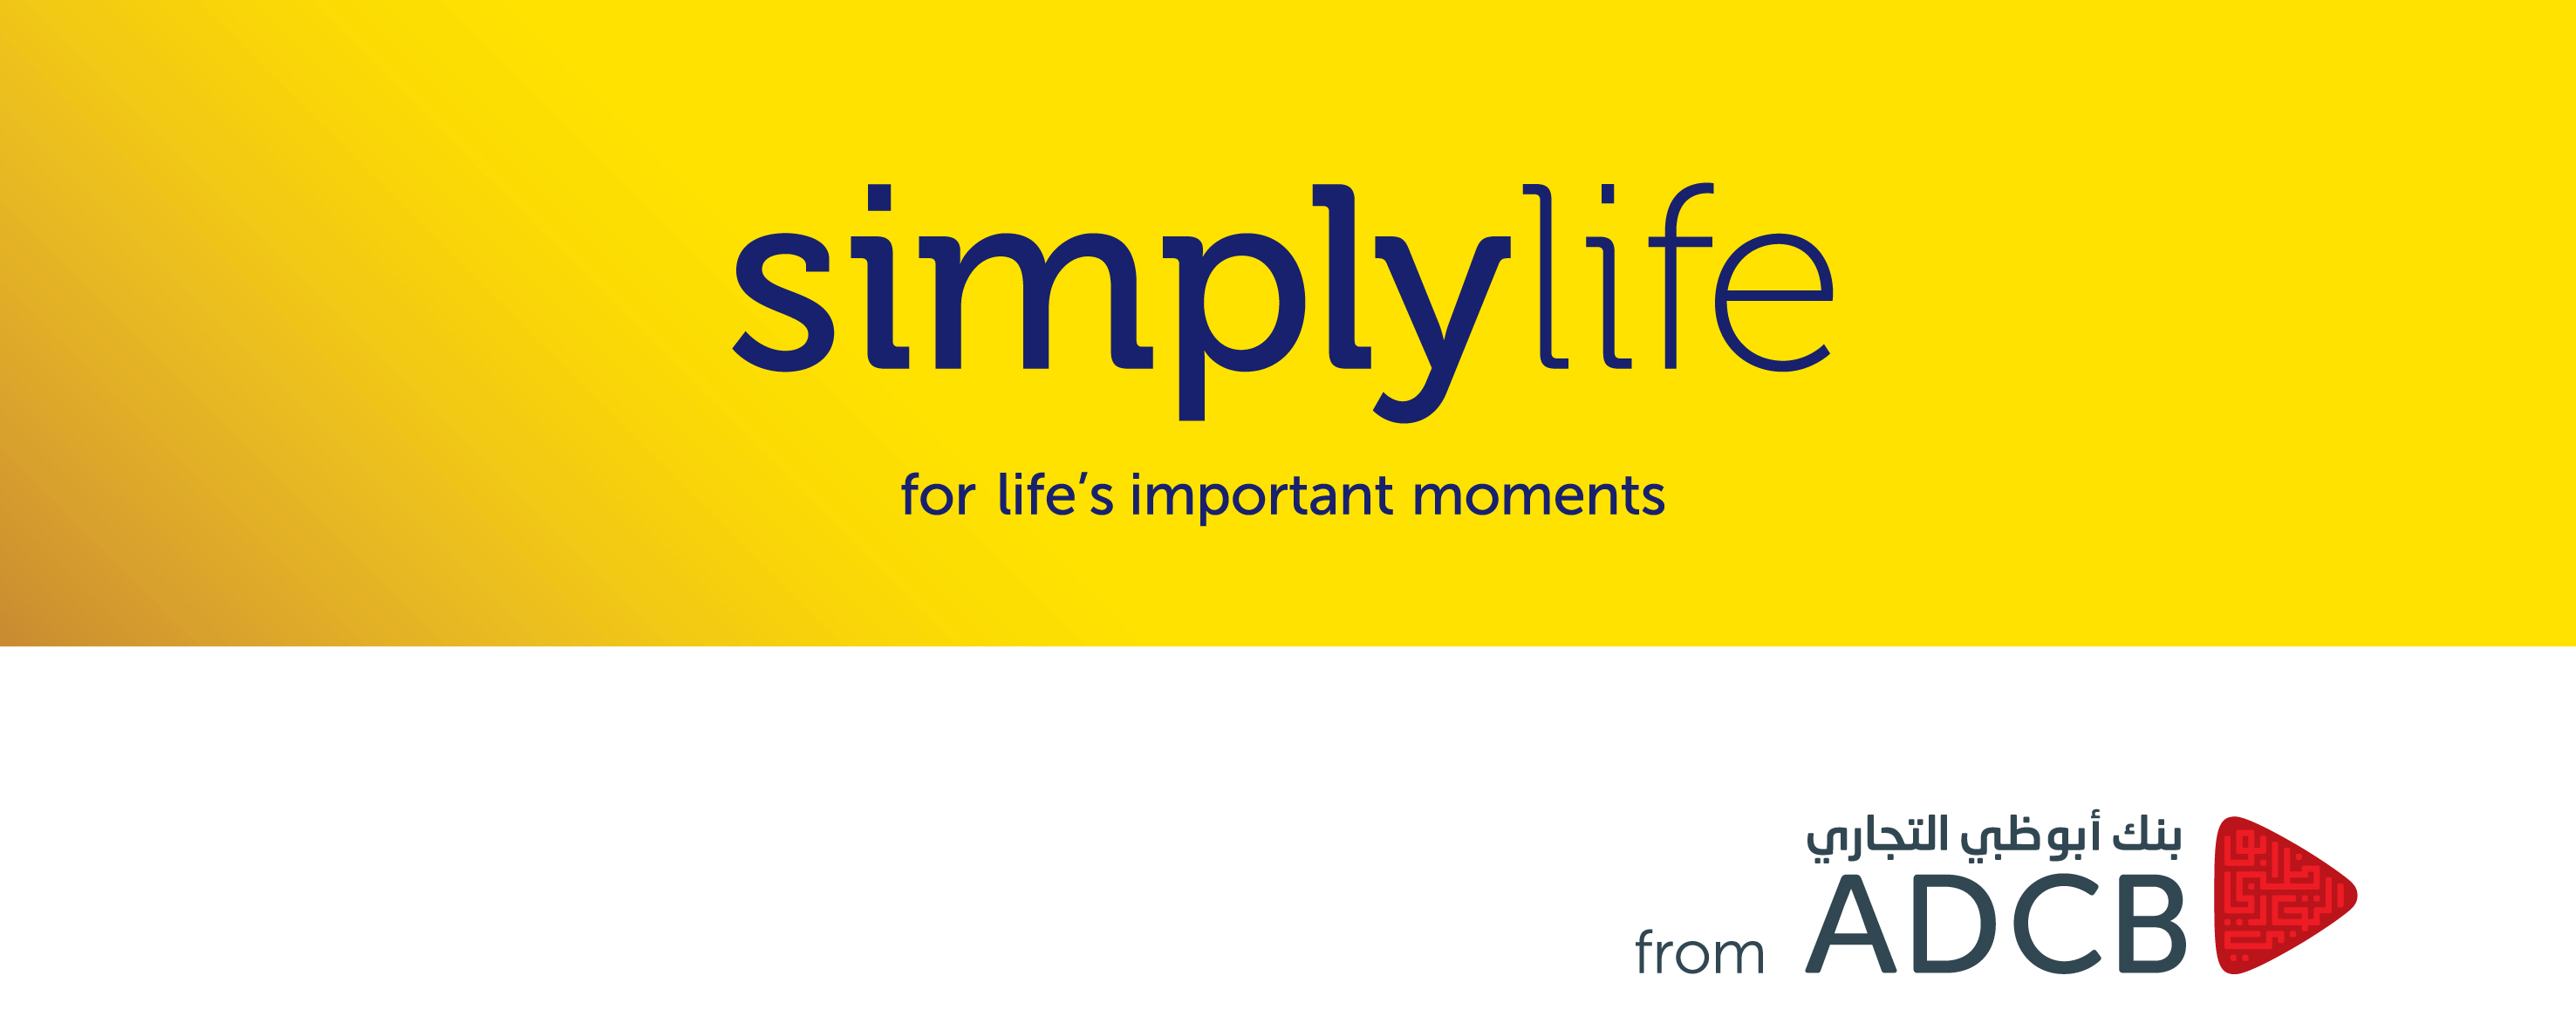 Simplylife - Car Loan from ADCB